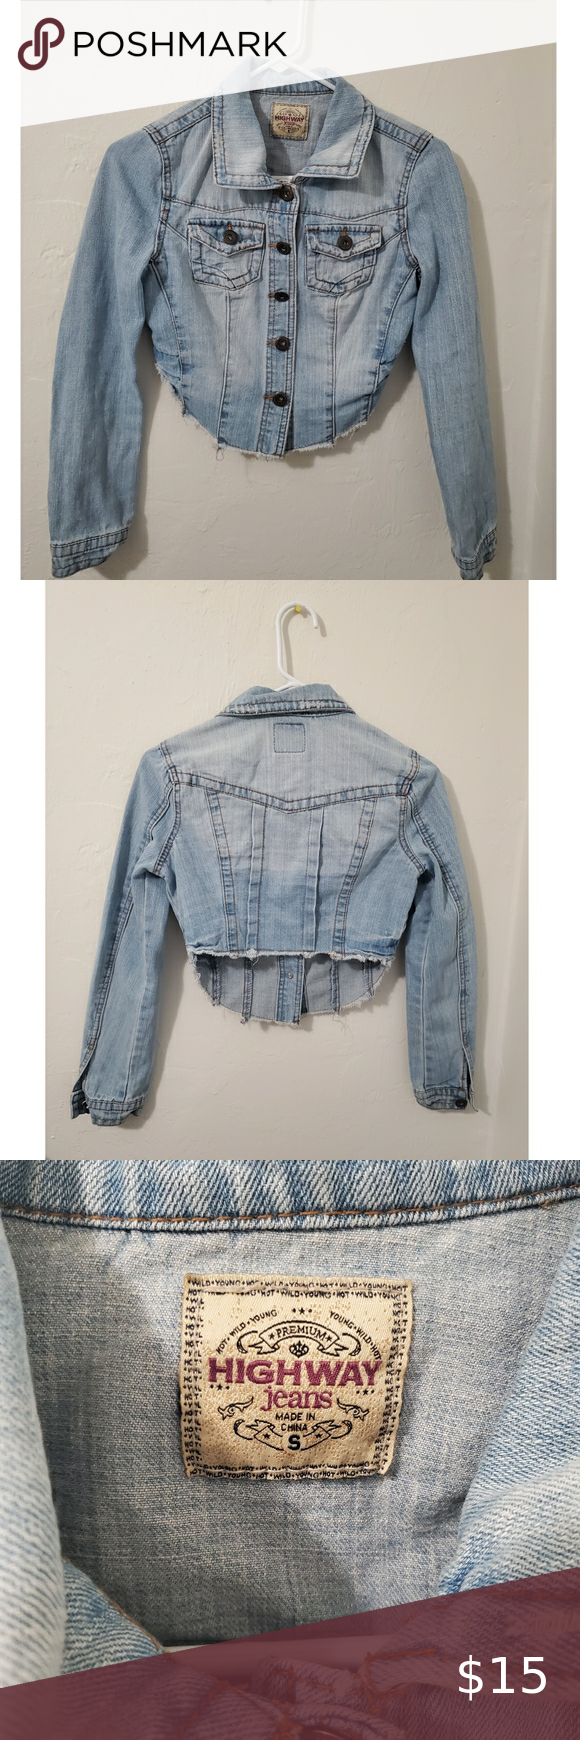 Highway Jeans Jean Jacket Pre Owned Nice Jacket In Perfect Conditions All Details Are Intact And Bottoms Hav Jeans And Jean Jacket Highway Jeans Jean Jacket [ 1740 x 580 Pixel ]